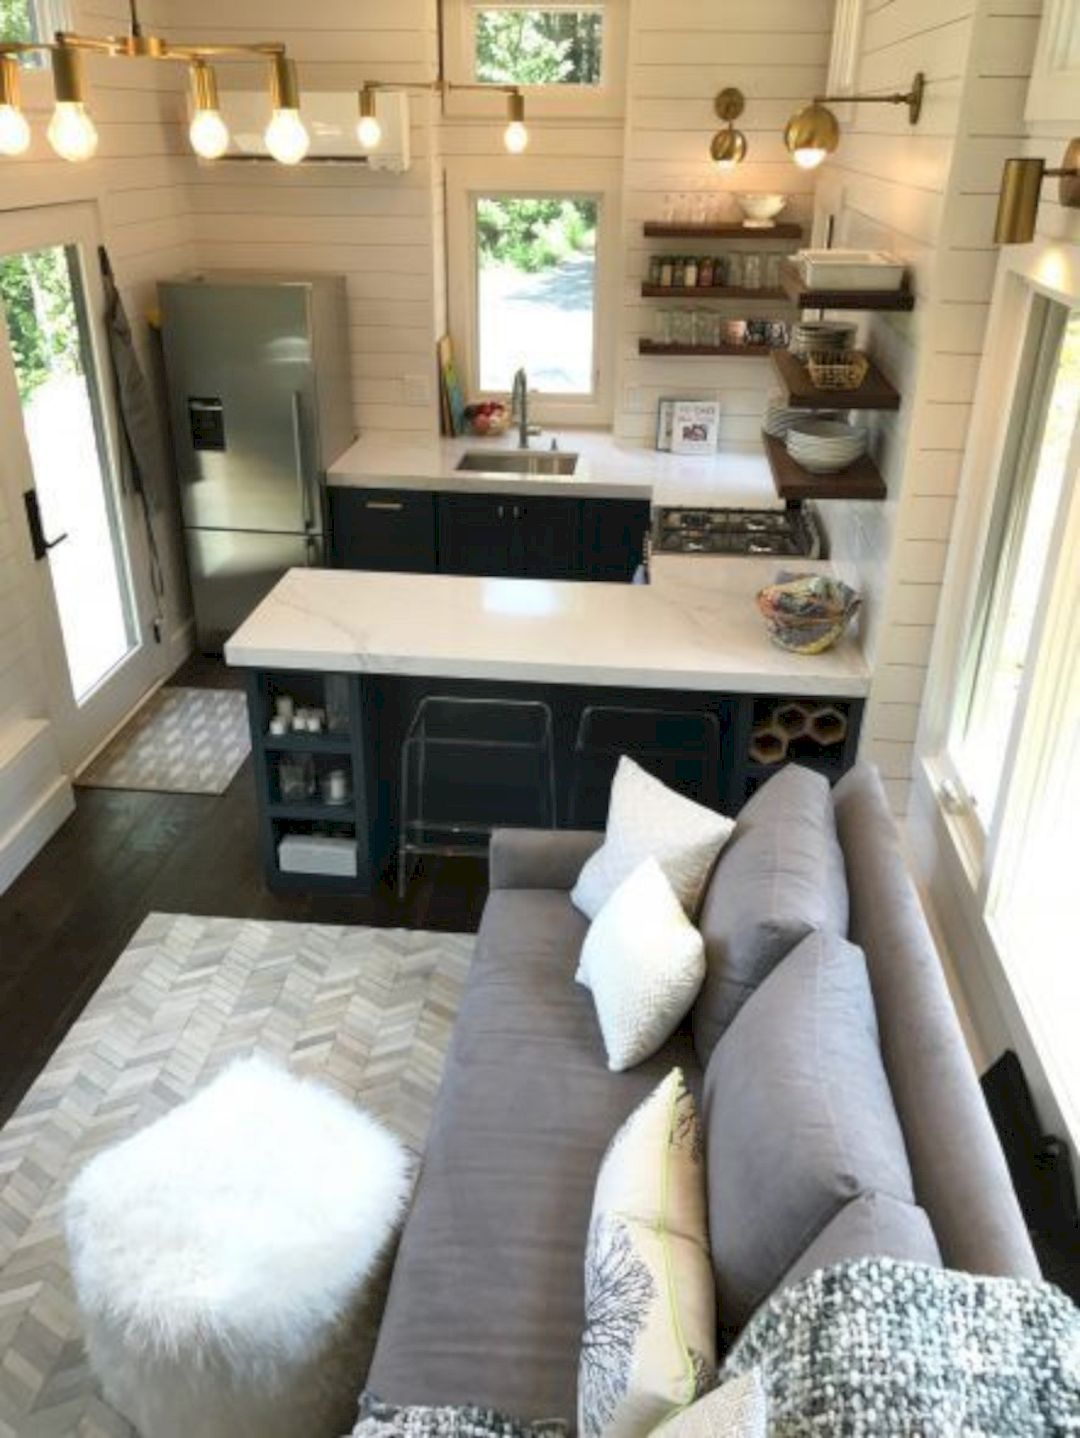 Captivating 16 Tiny House Furniture Ideas Https://www.futuristarchitecture.com/32392